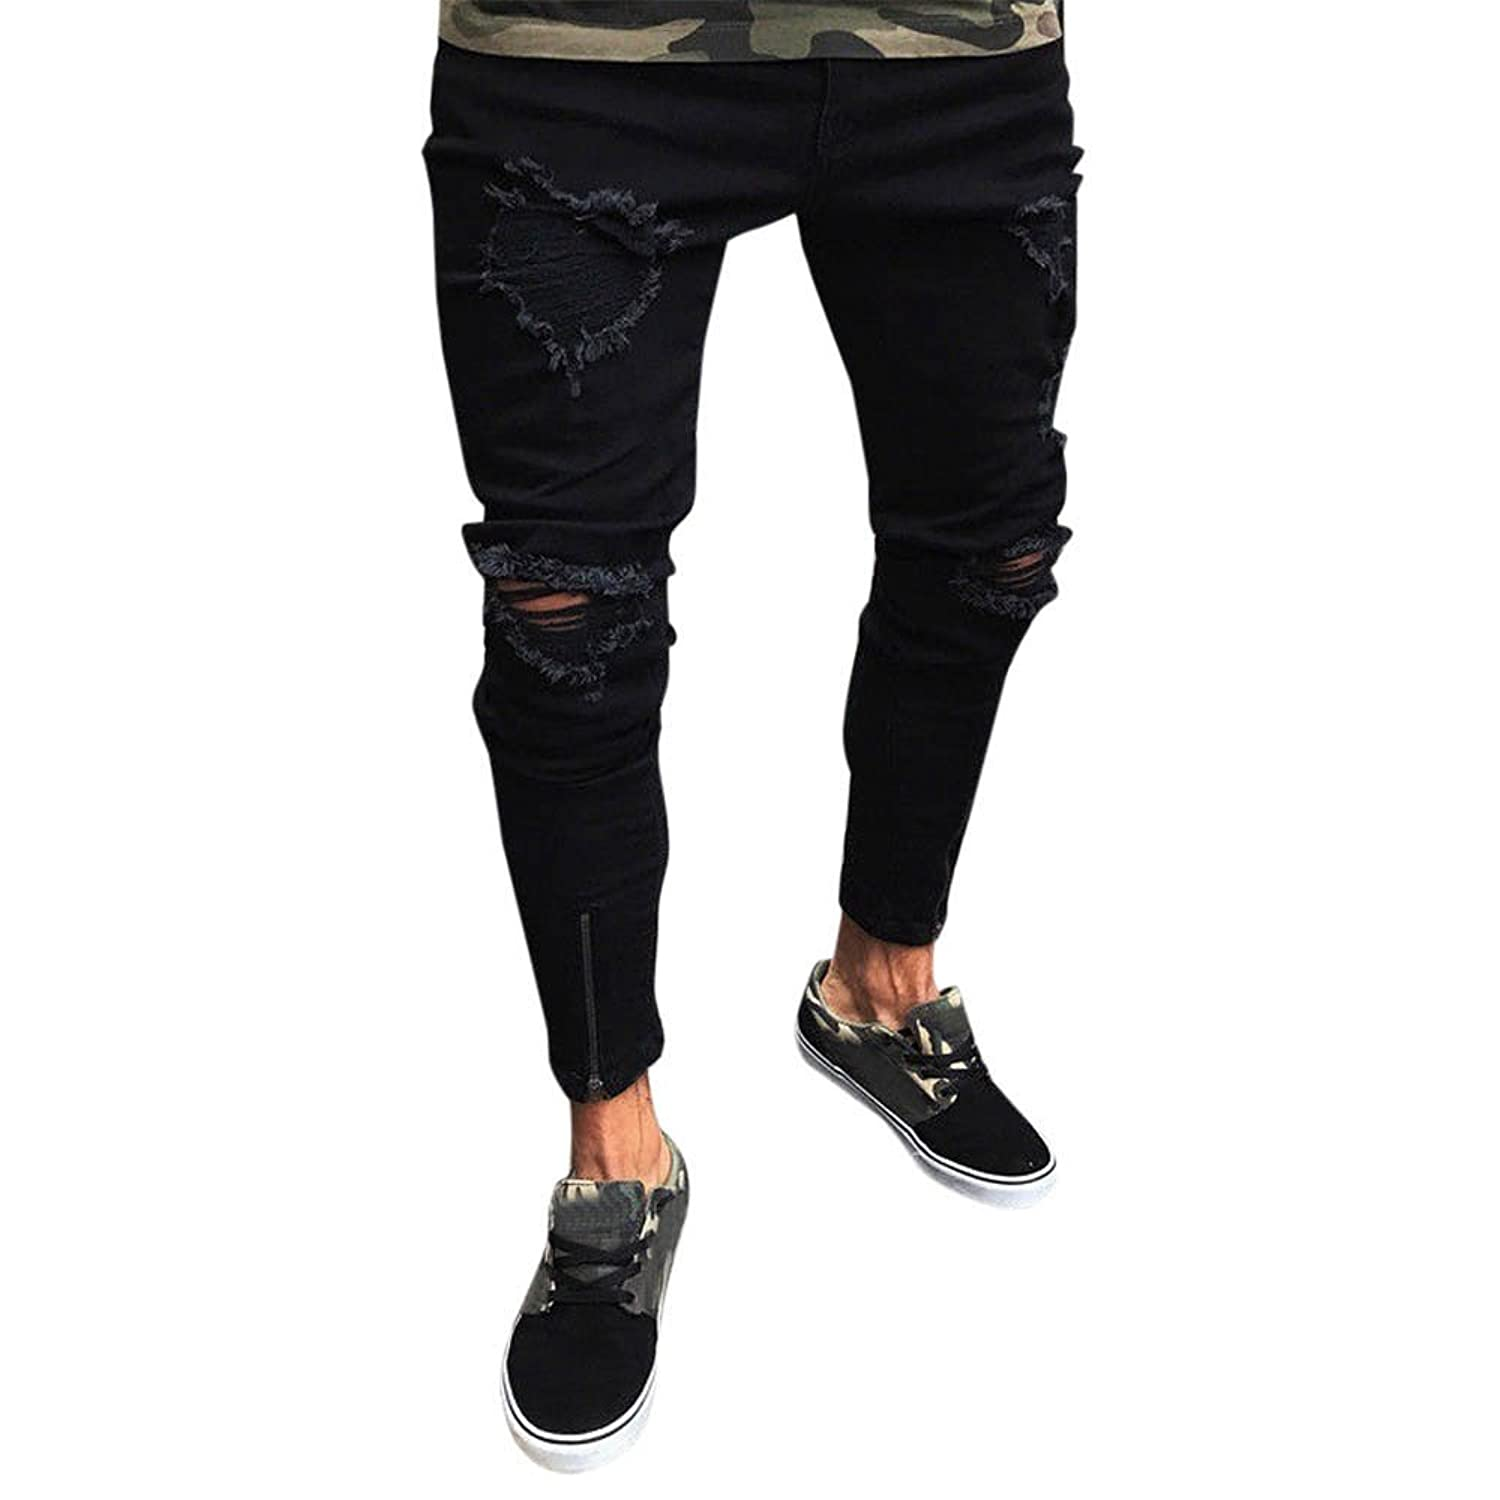 ❤Clearance sale Men Slim Biker Zipper Denim Jeans Skinny Frayed Pants  Distressed Rip Trousers ❤NOTE  Please compare the detail sizes with yours  before you ... 90a048b46